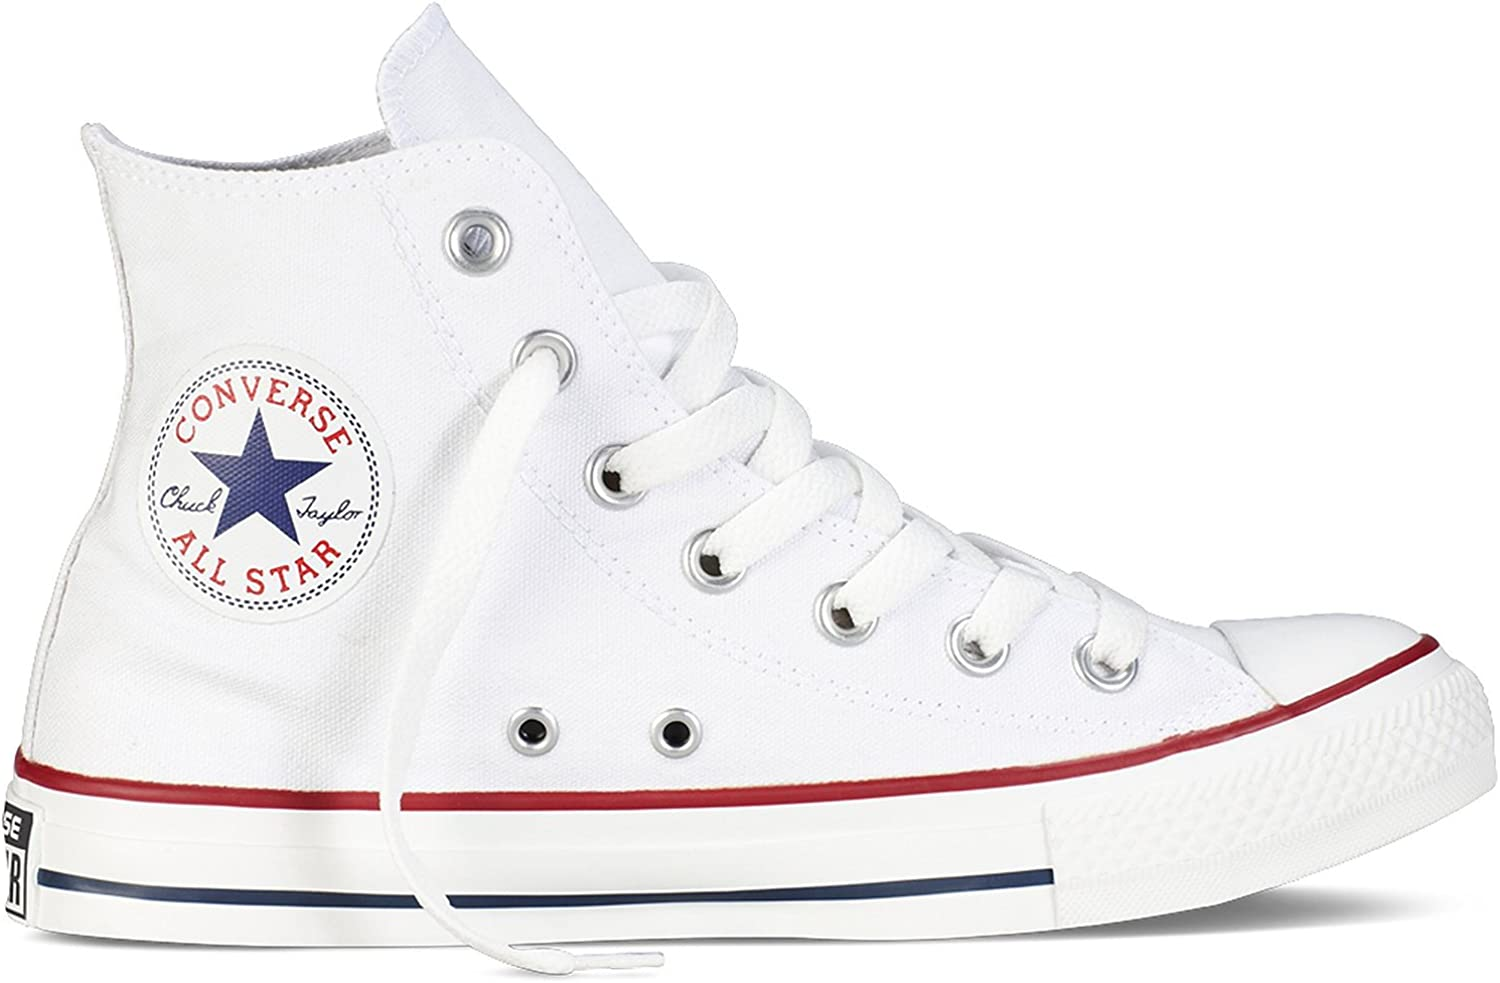 Amazon.com: Converse Unisex Chuck Taylor All Star Hi Top ...